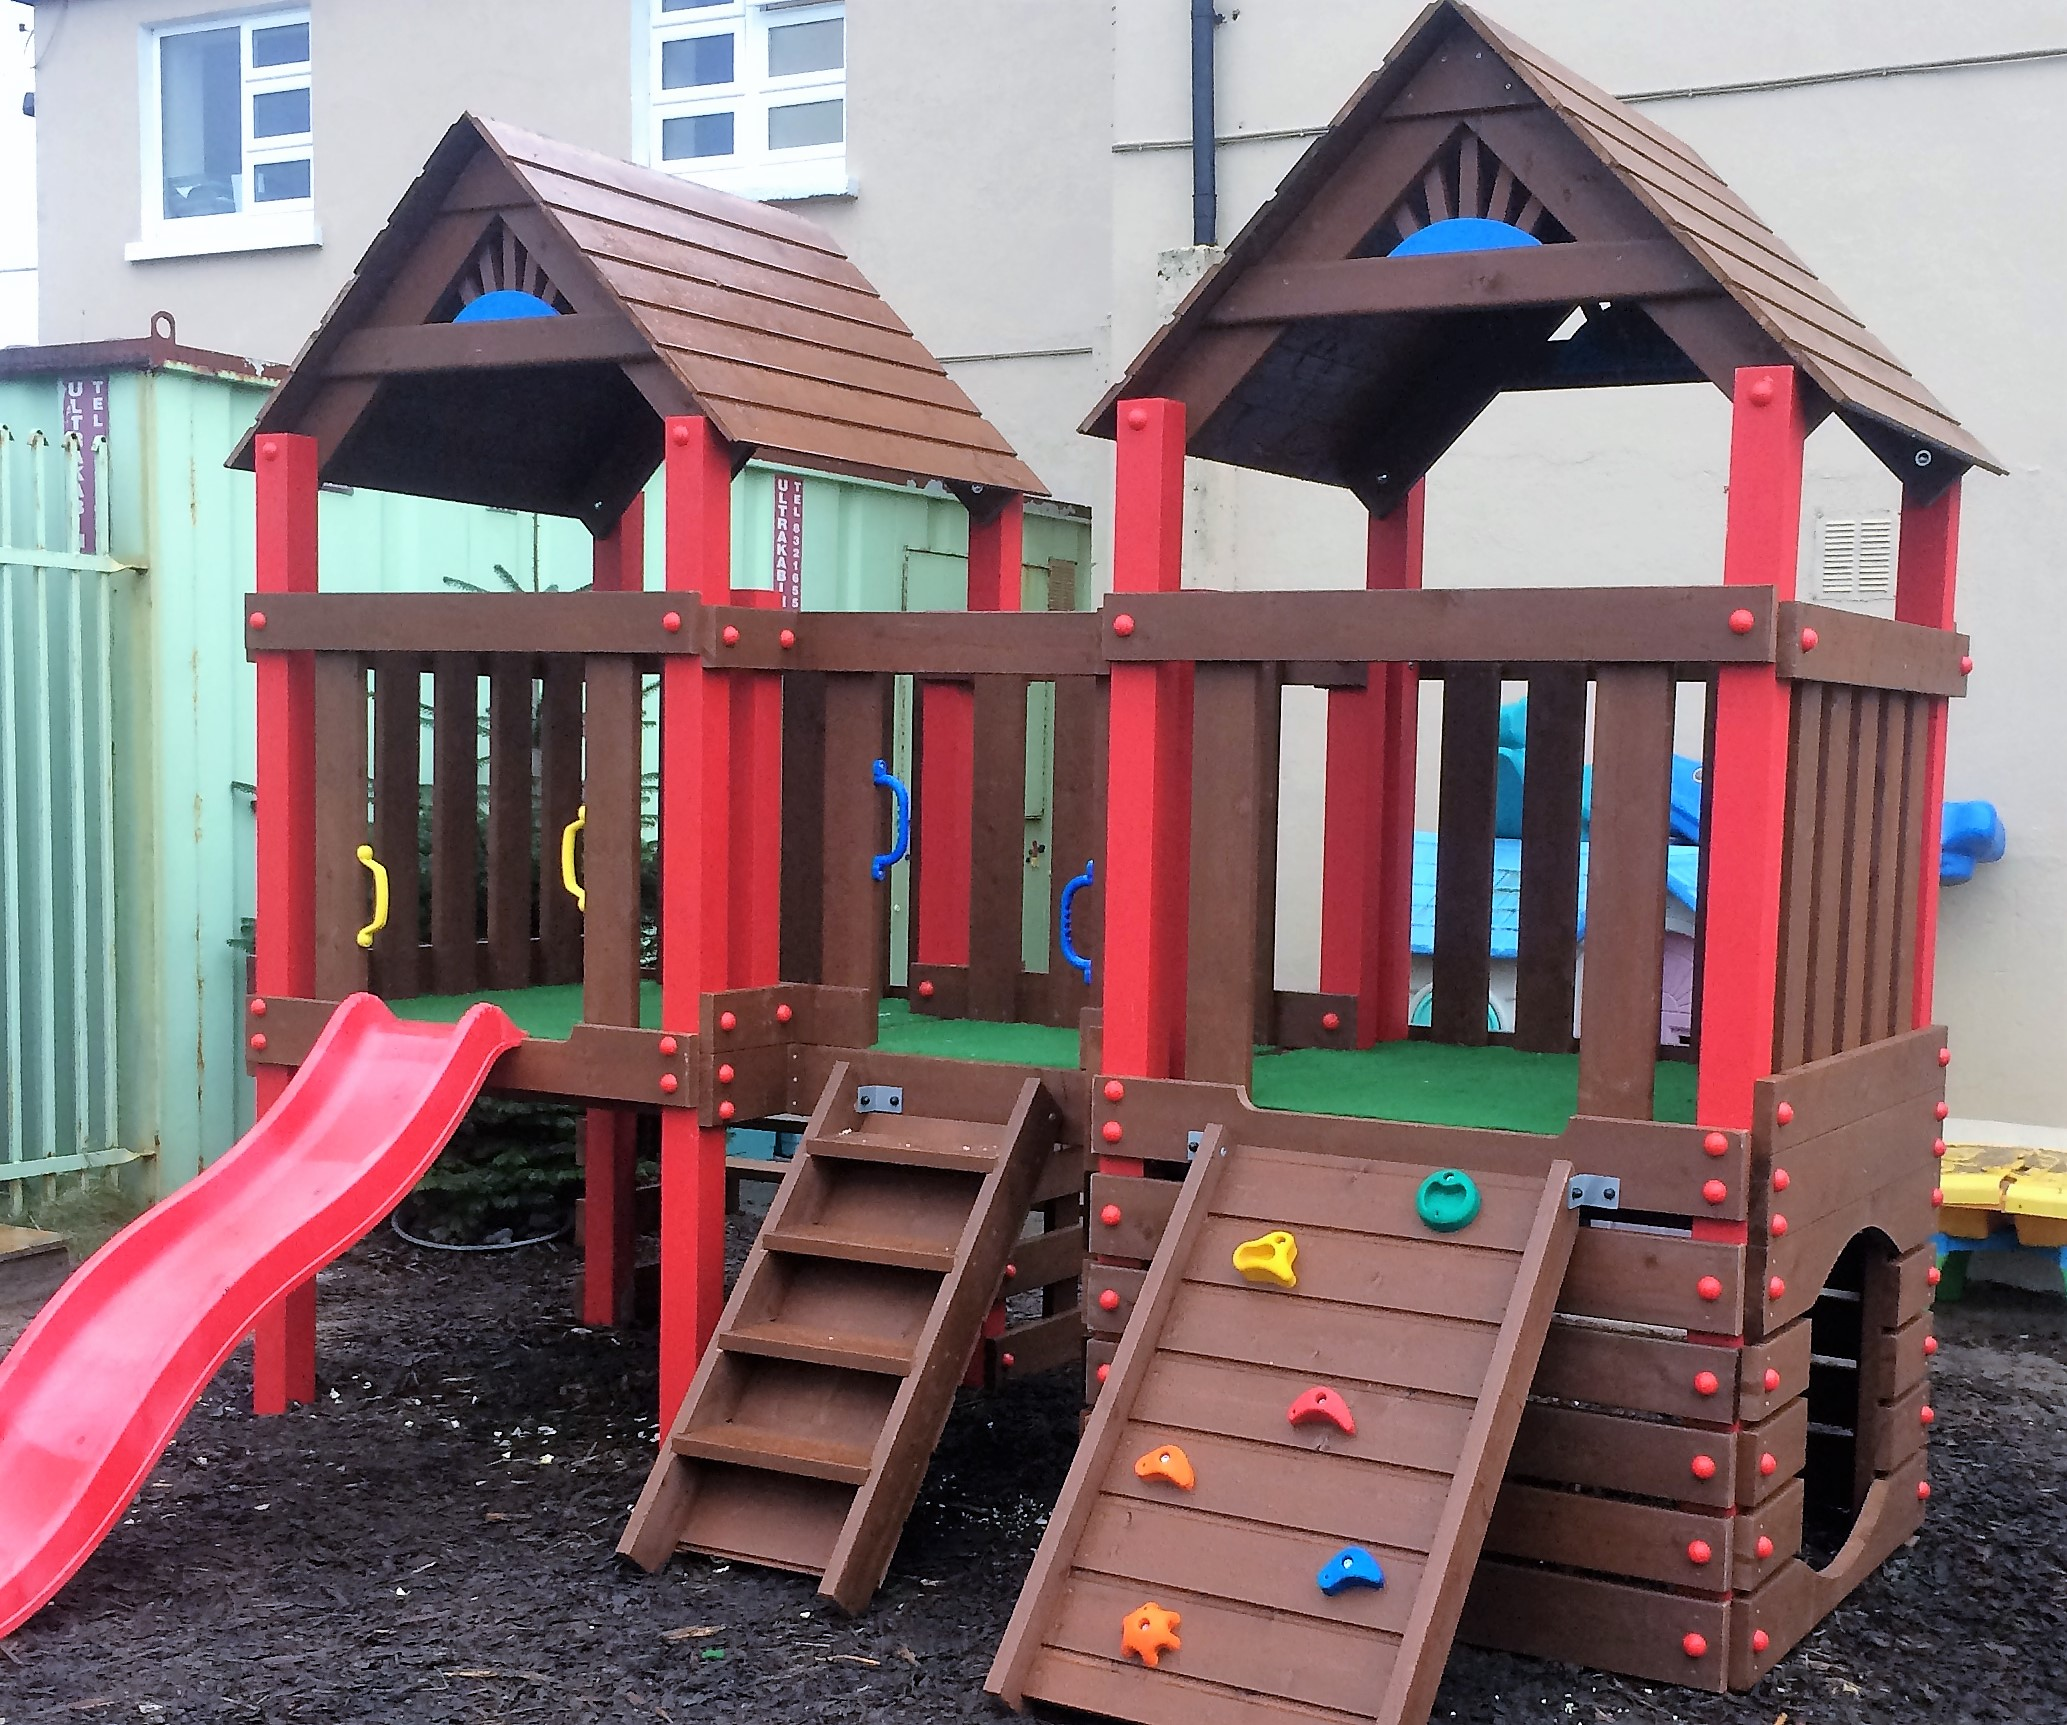 Creche & Playschool Archives • outdoor playground equipment